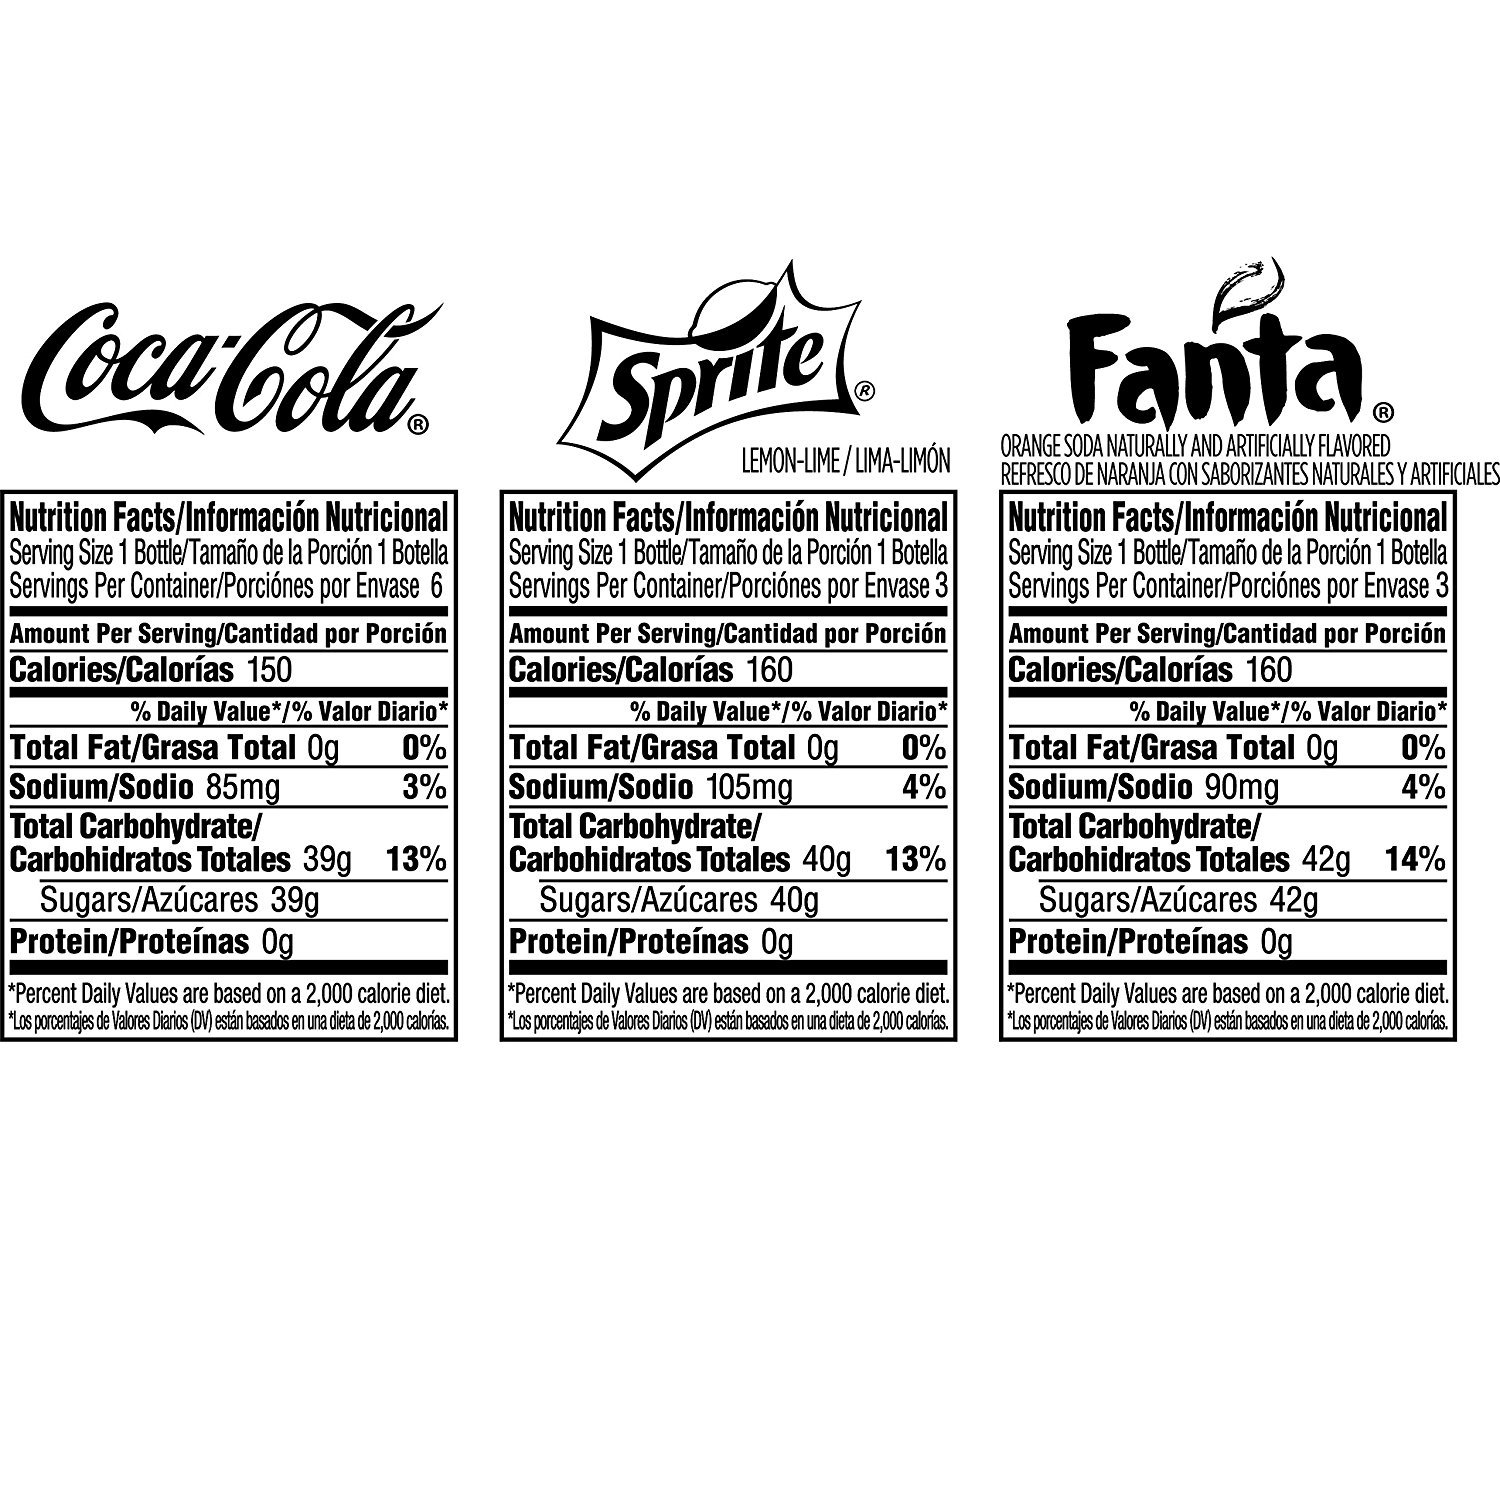 Amazon.com : Mexican Coke Fiesta Pack, 12 fl oz Glass Bottles (Pack of 6, Total of 72 Oz) : Grocery & Gourmet Food